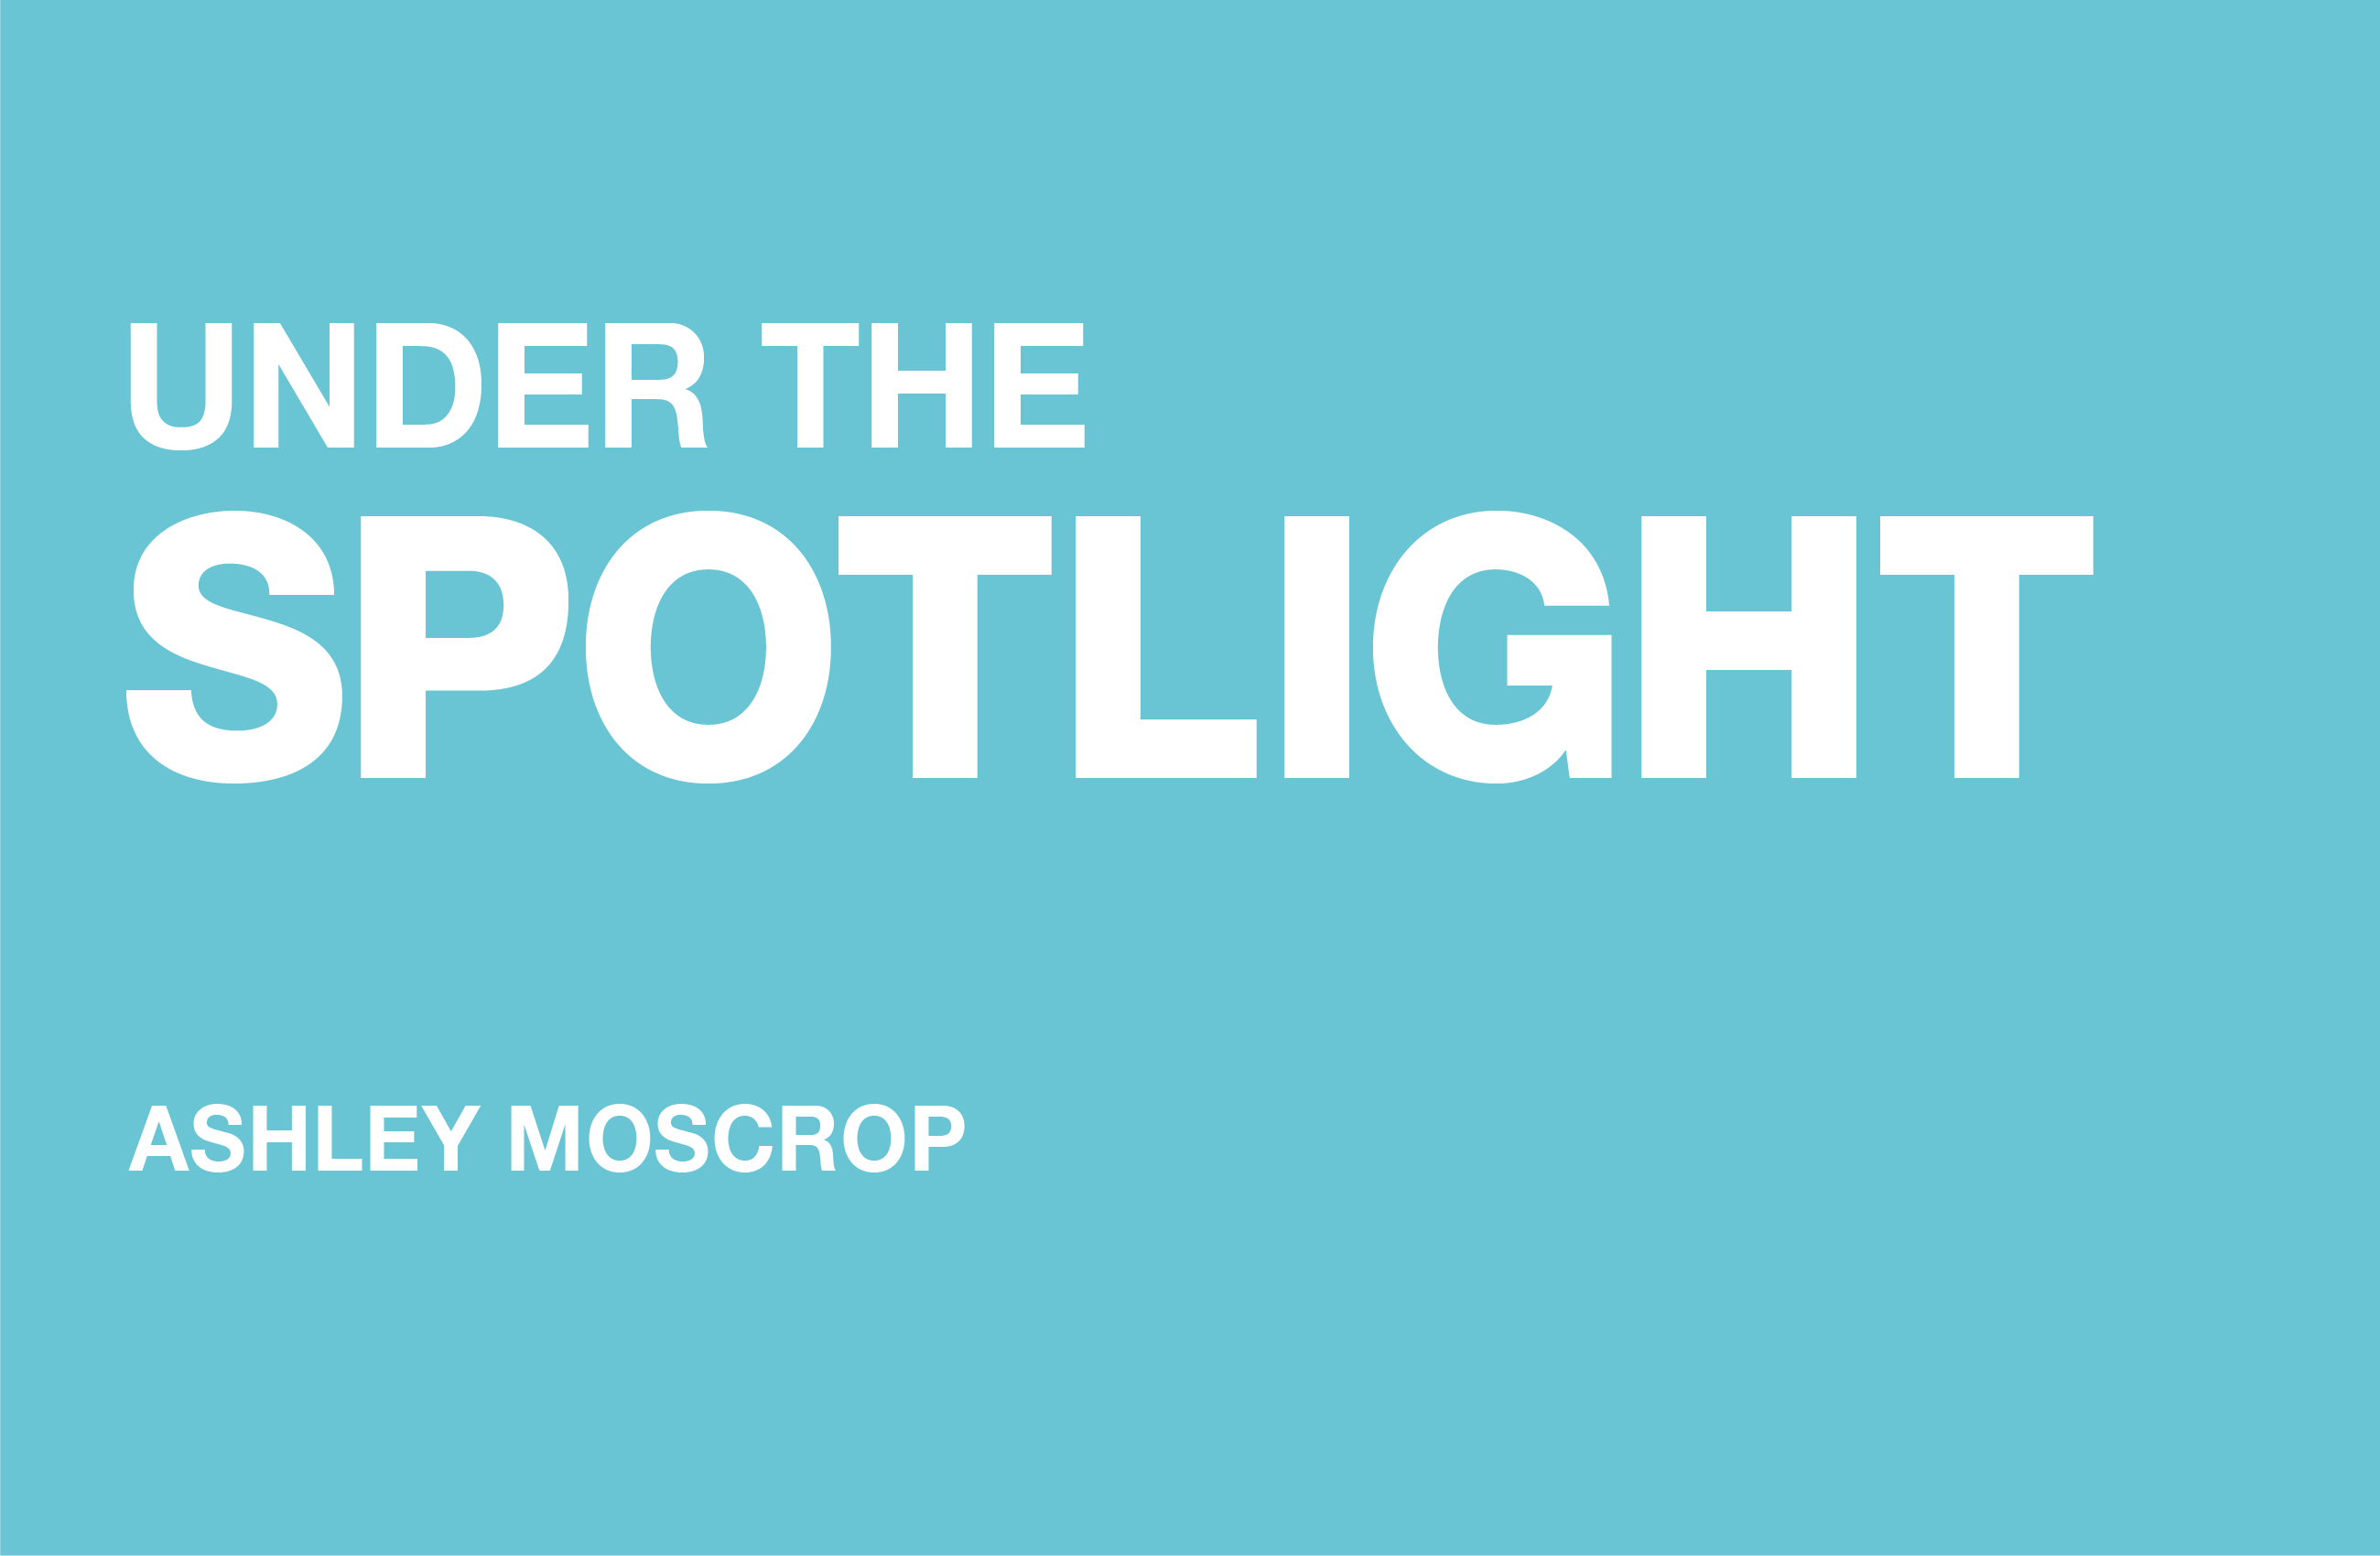 Ashley Moscrop, MD at Dufaylite In The Spotlight